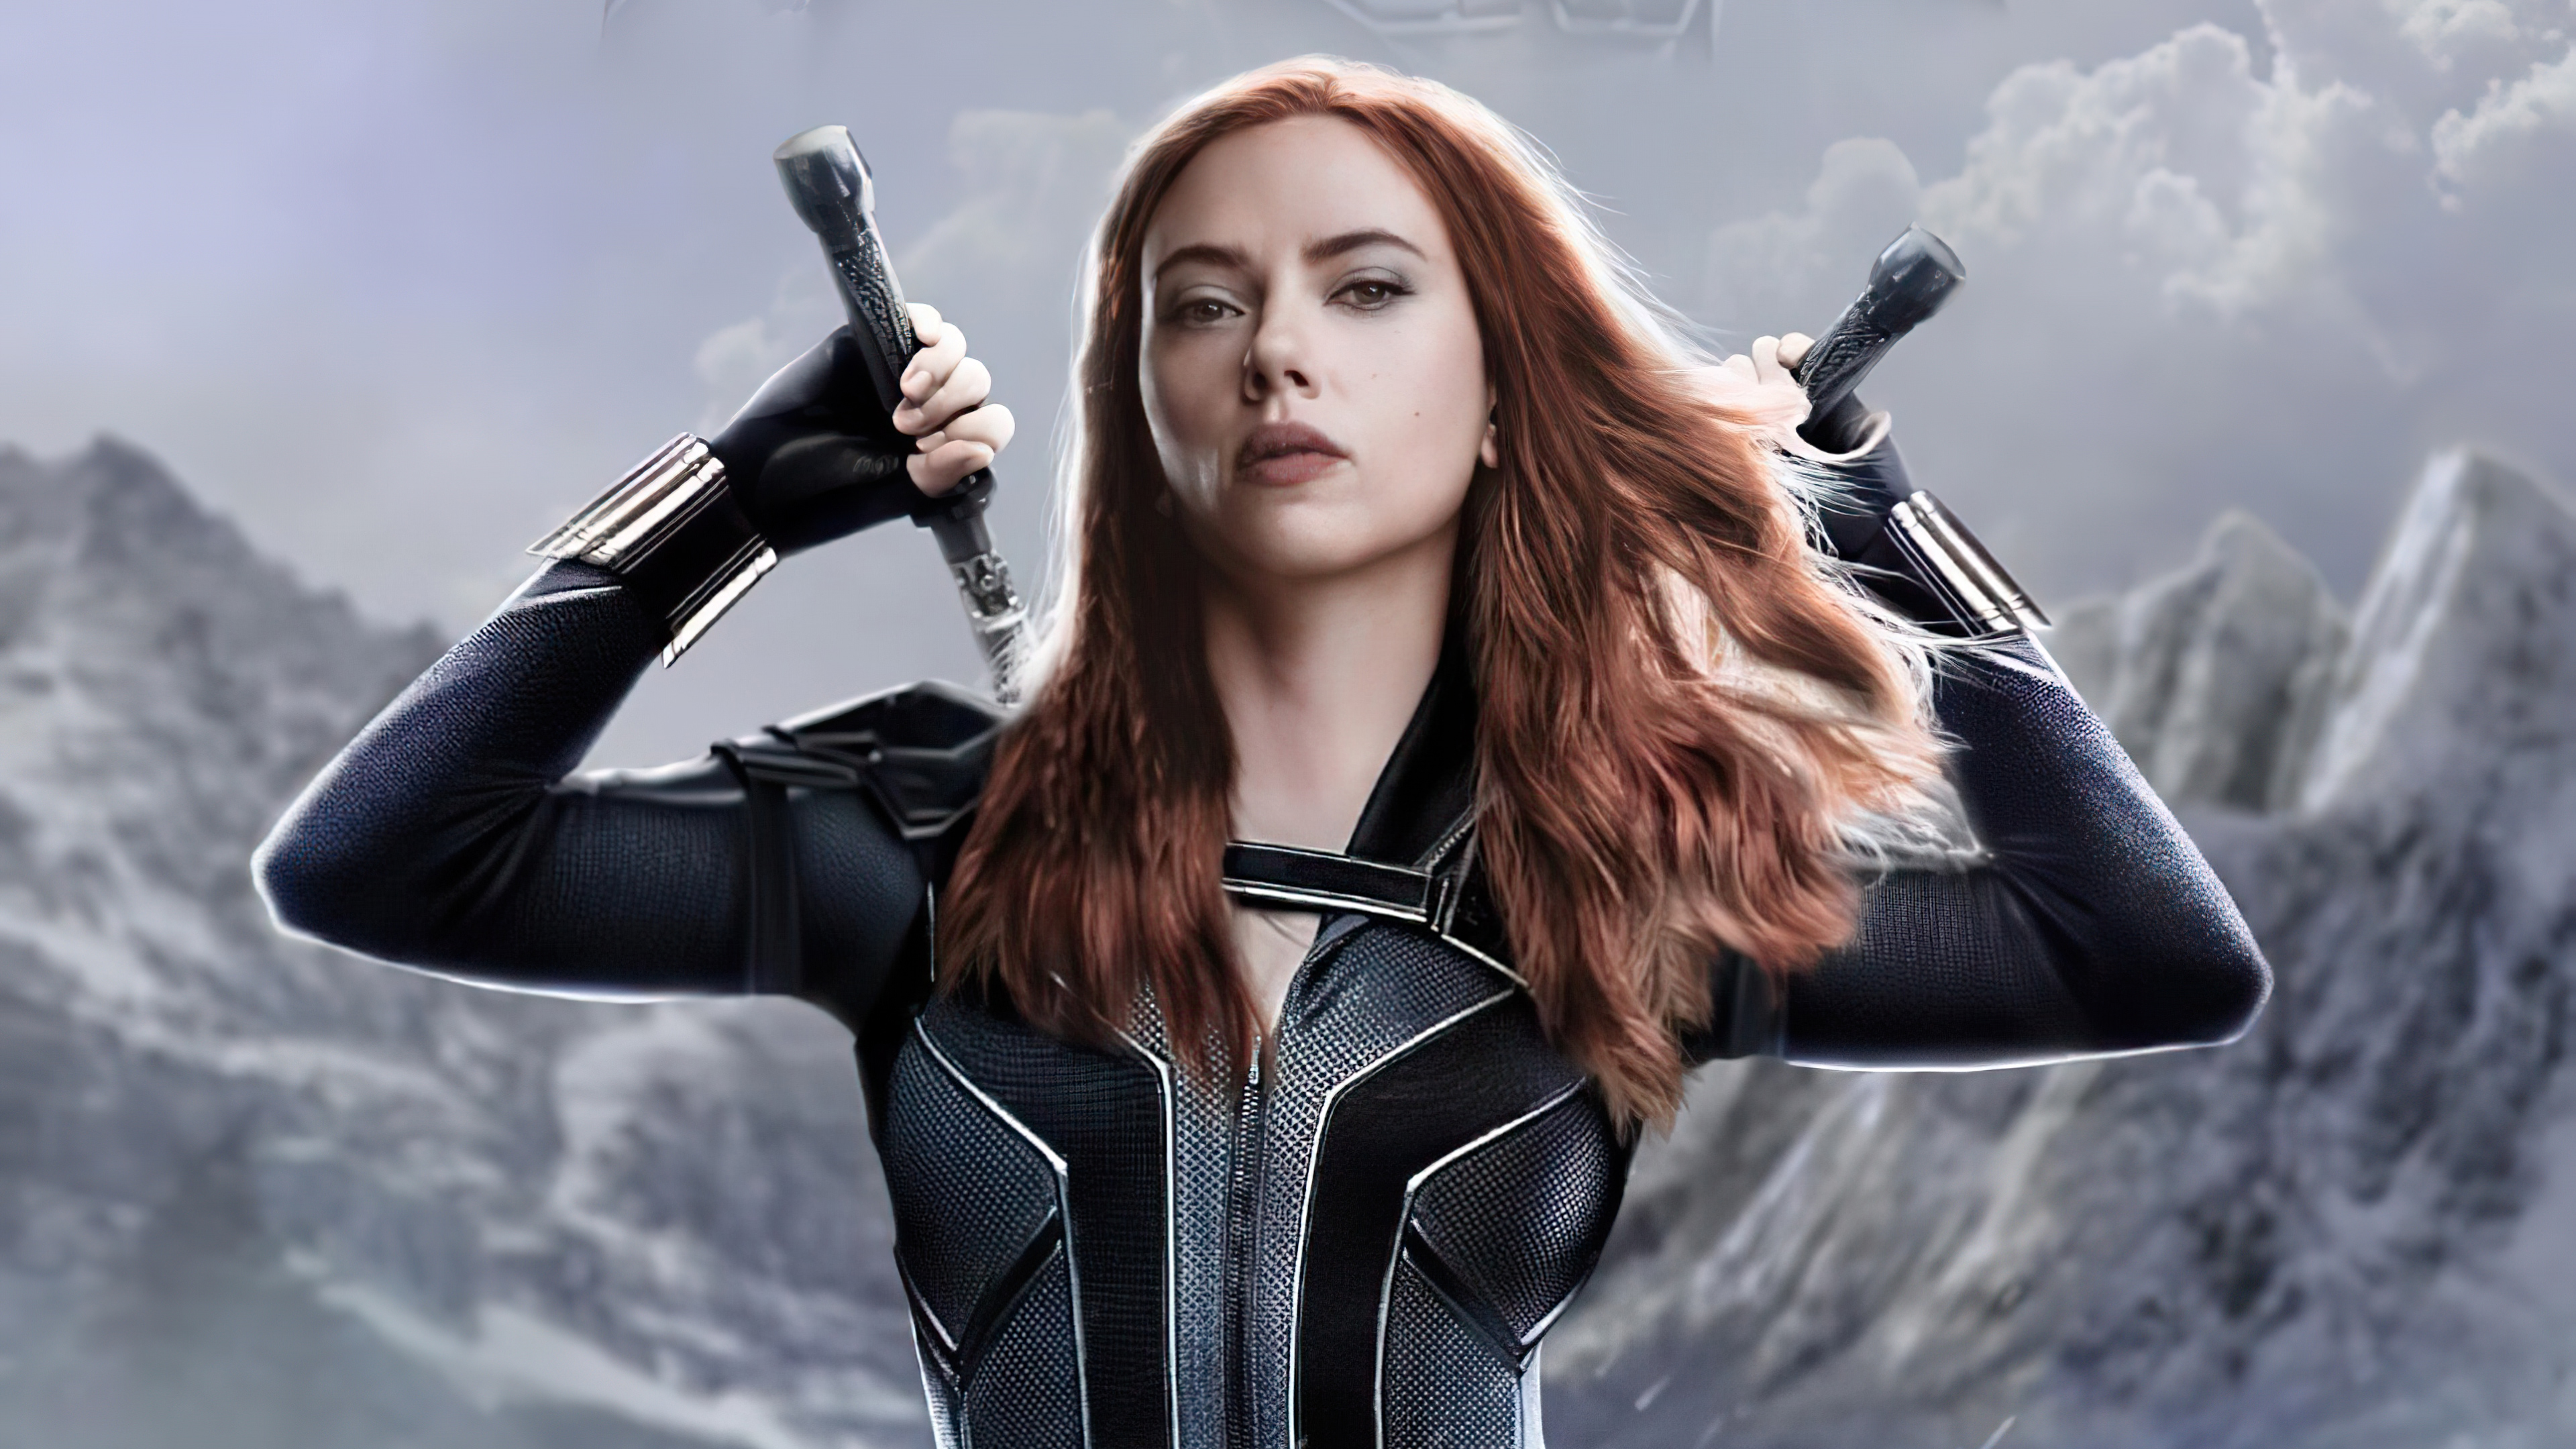 black widow with weapons